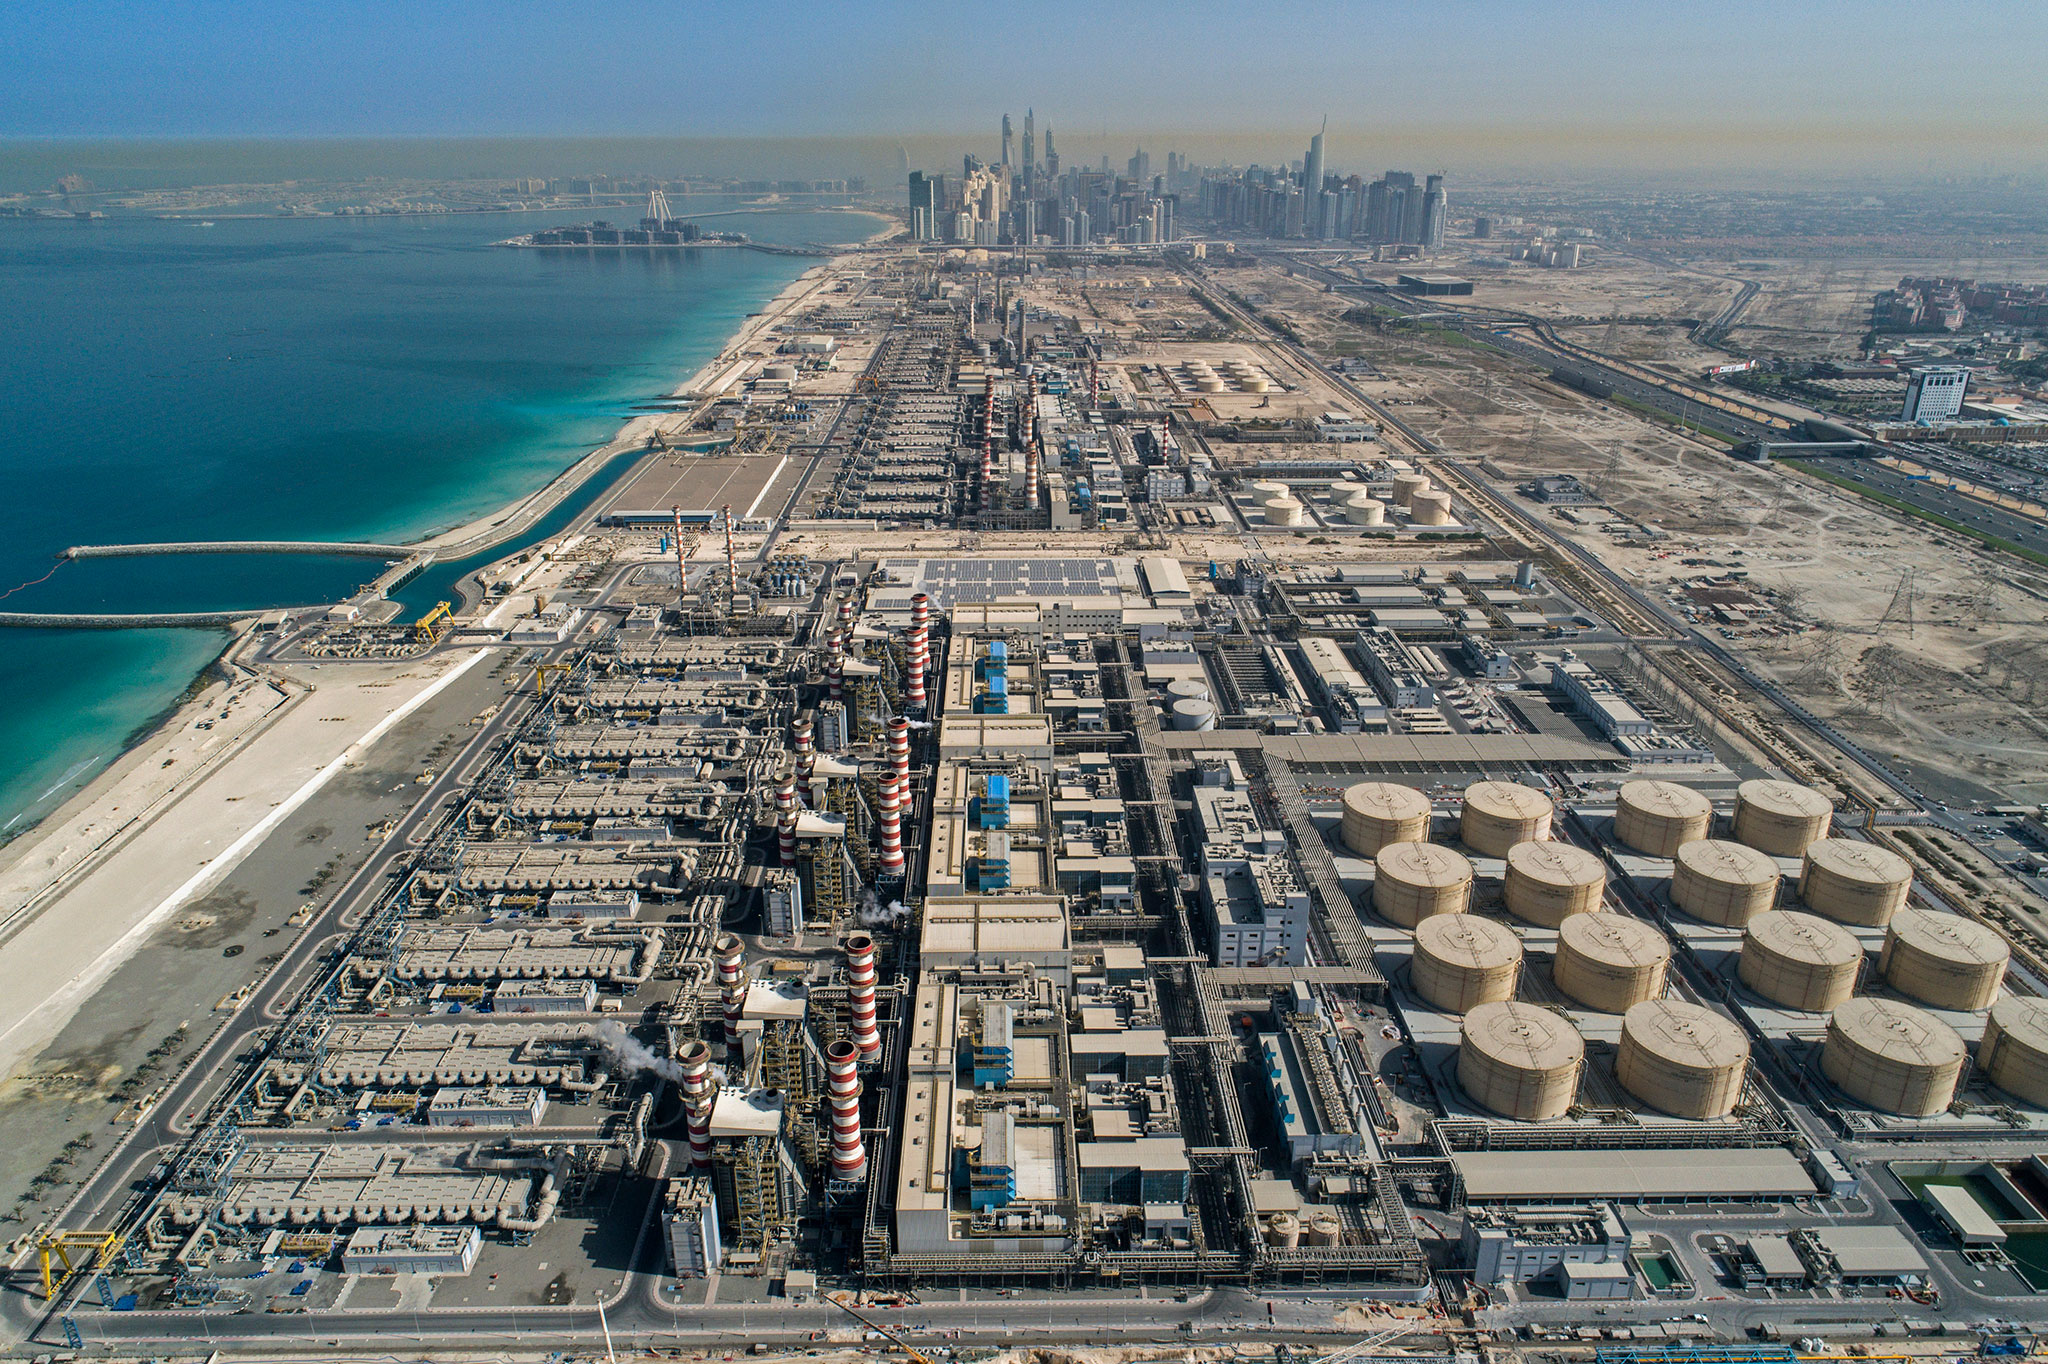 DESALINATION EQUIPMENT SUPPLIERS AND ENGINEERING SERVICES in Doha Qatar